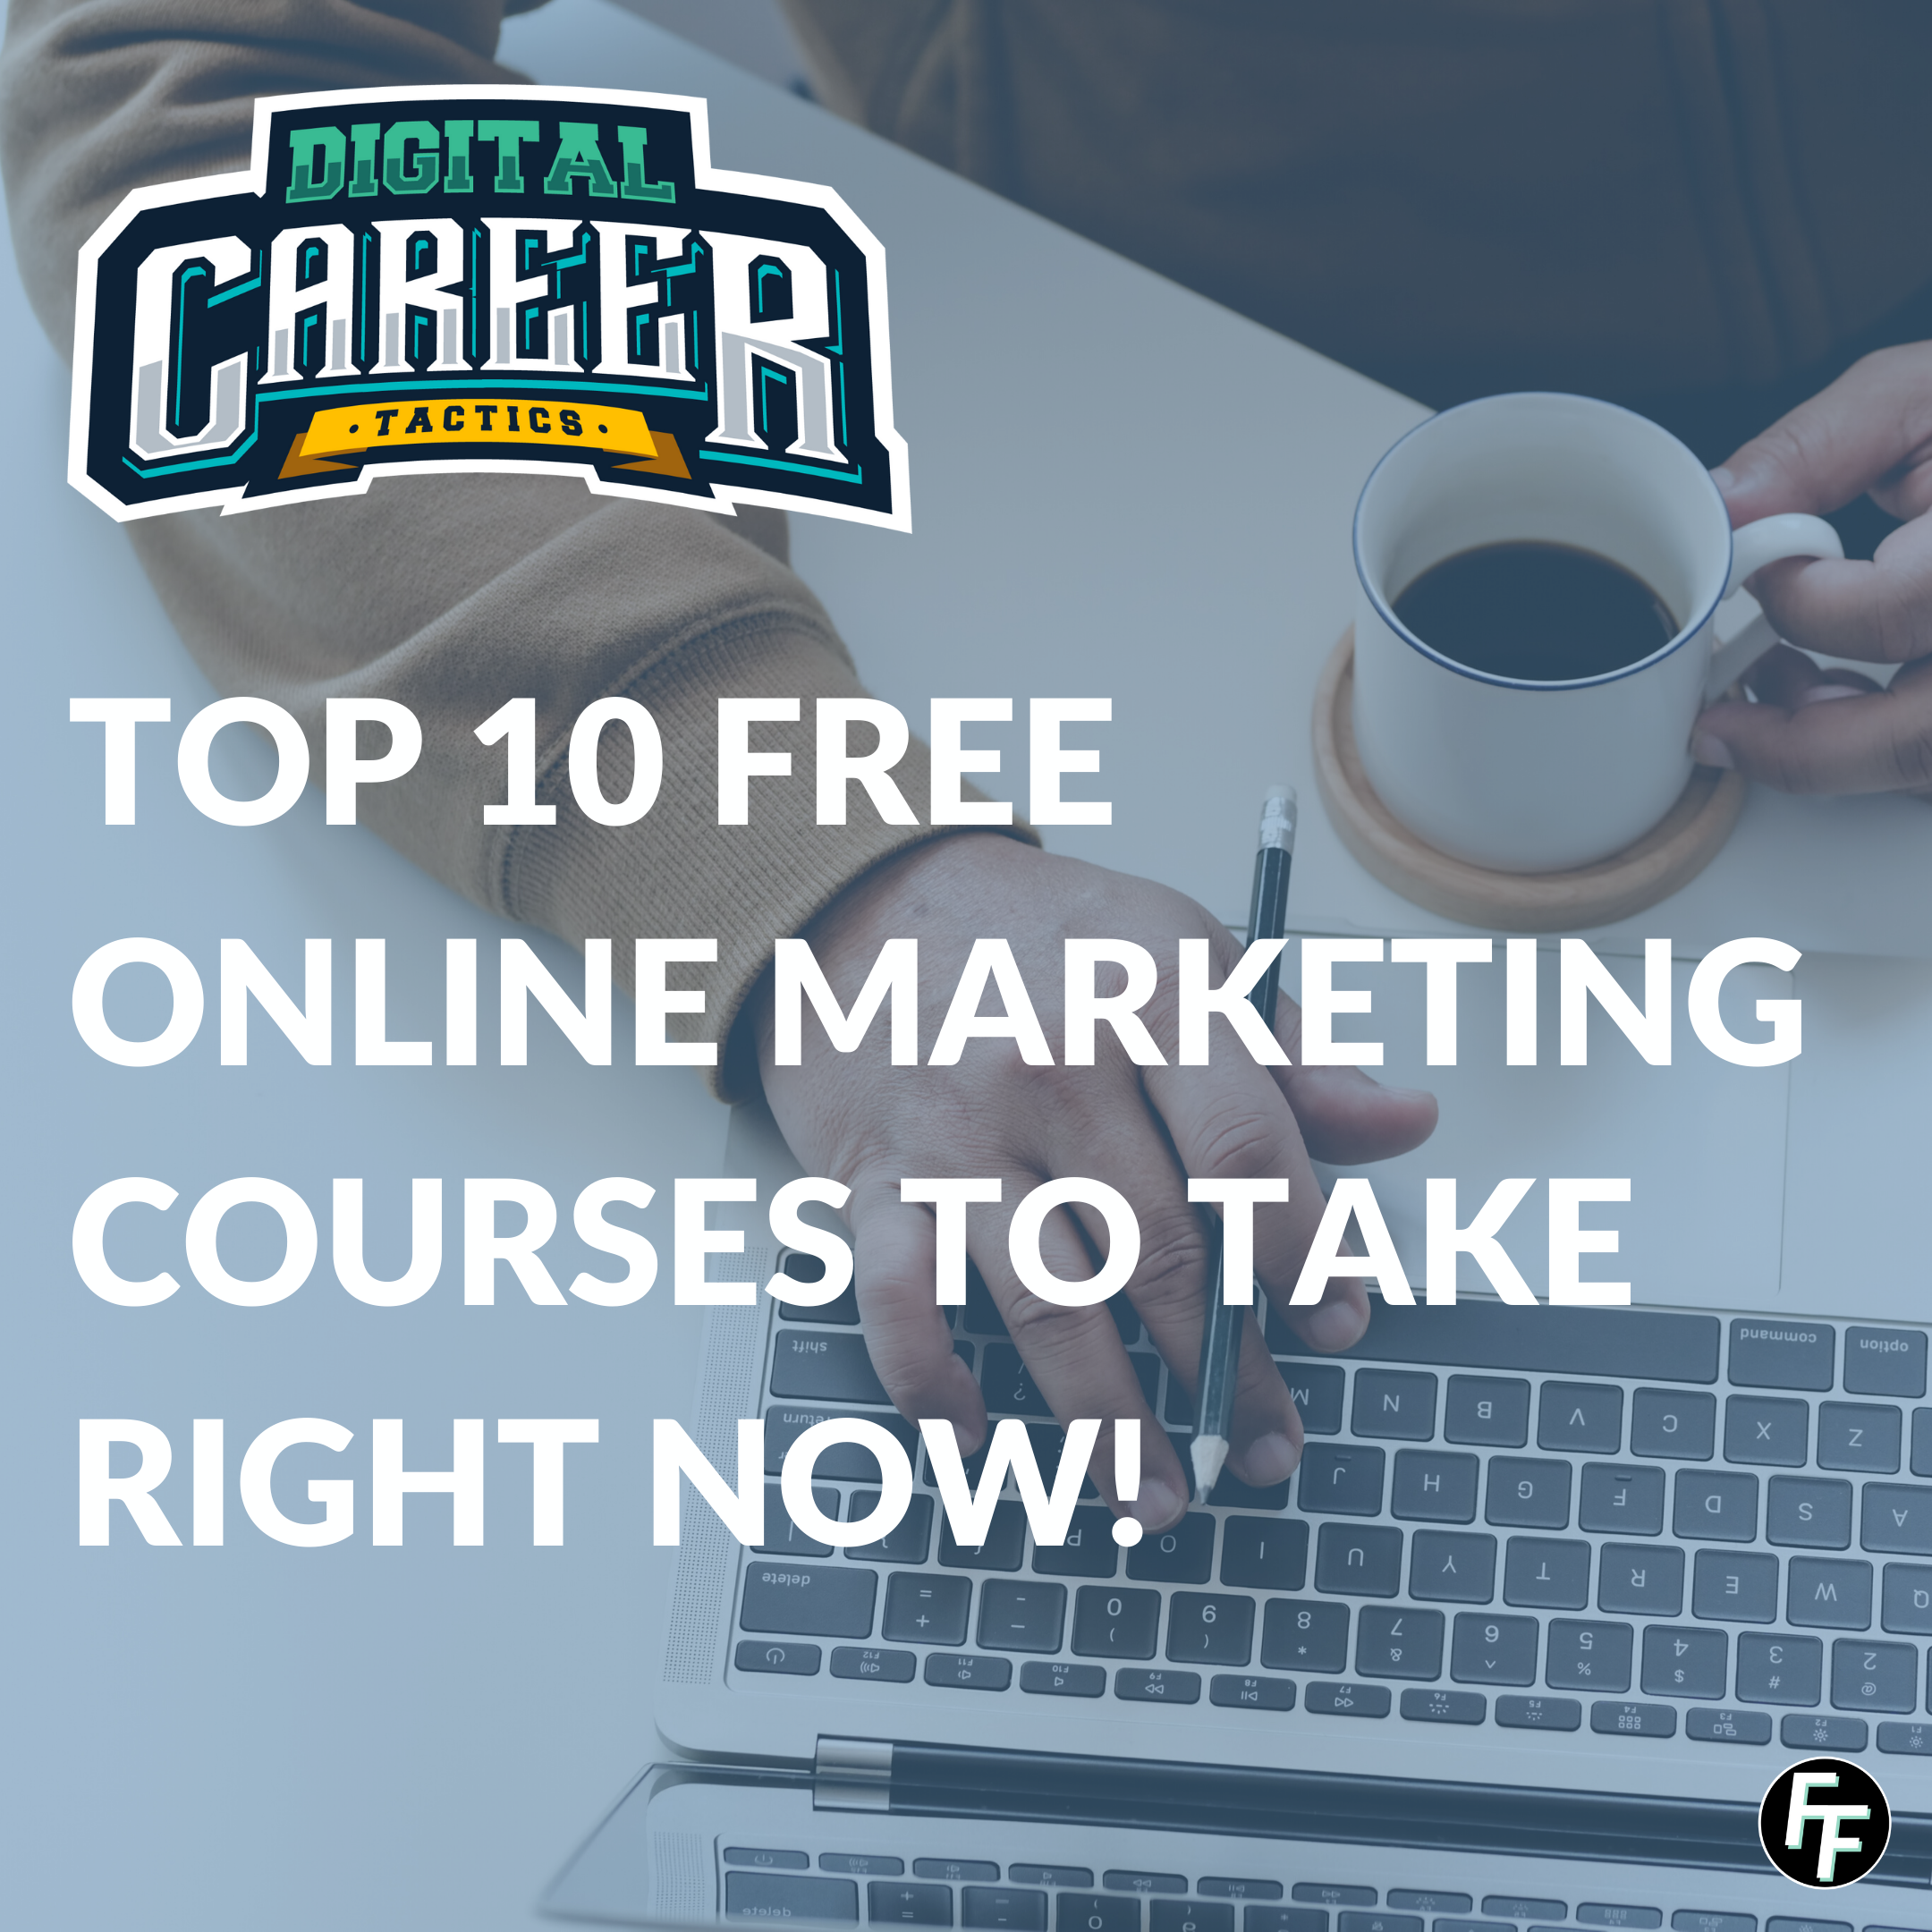 Top 10 digital online courses to take right now!